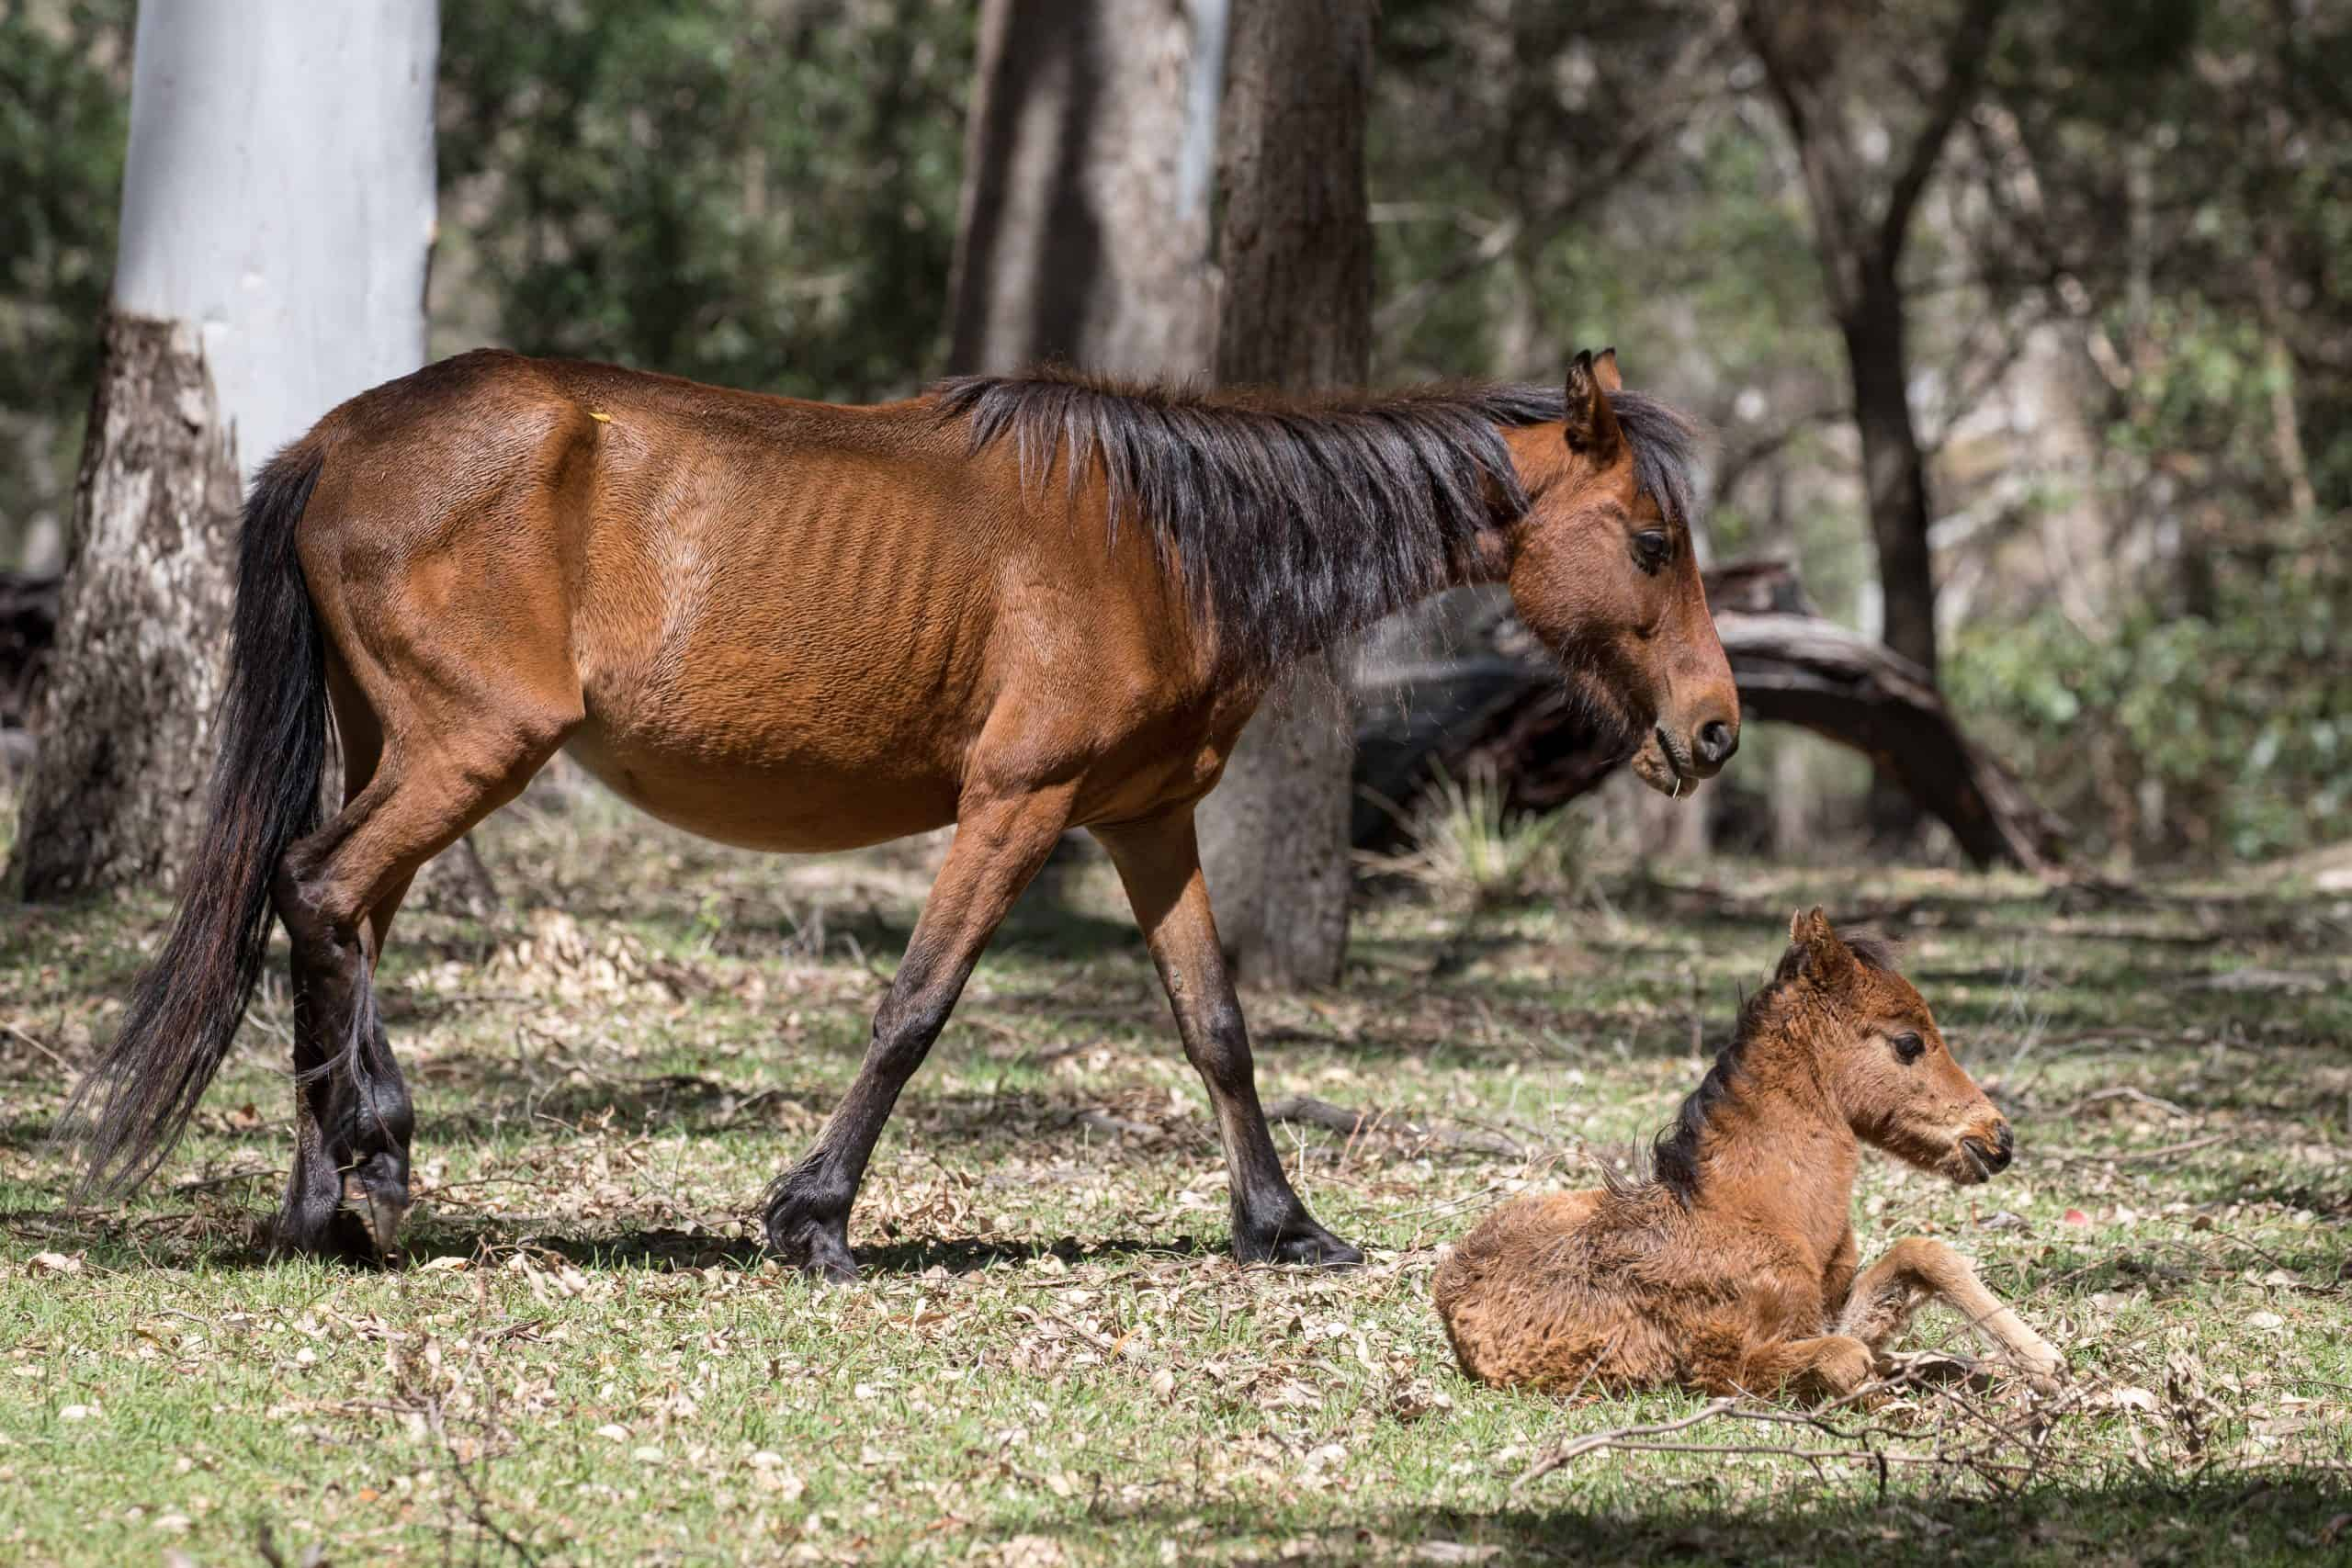 Wild Horse or Brumby with foal, Koombit Tops National Park Queensland Australia